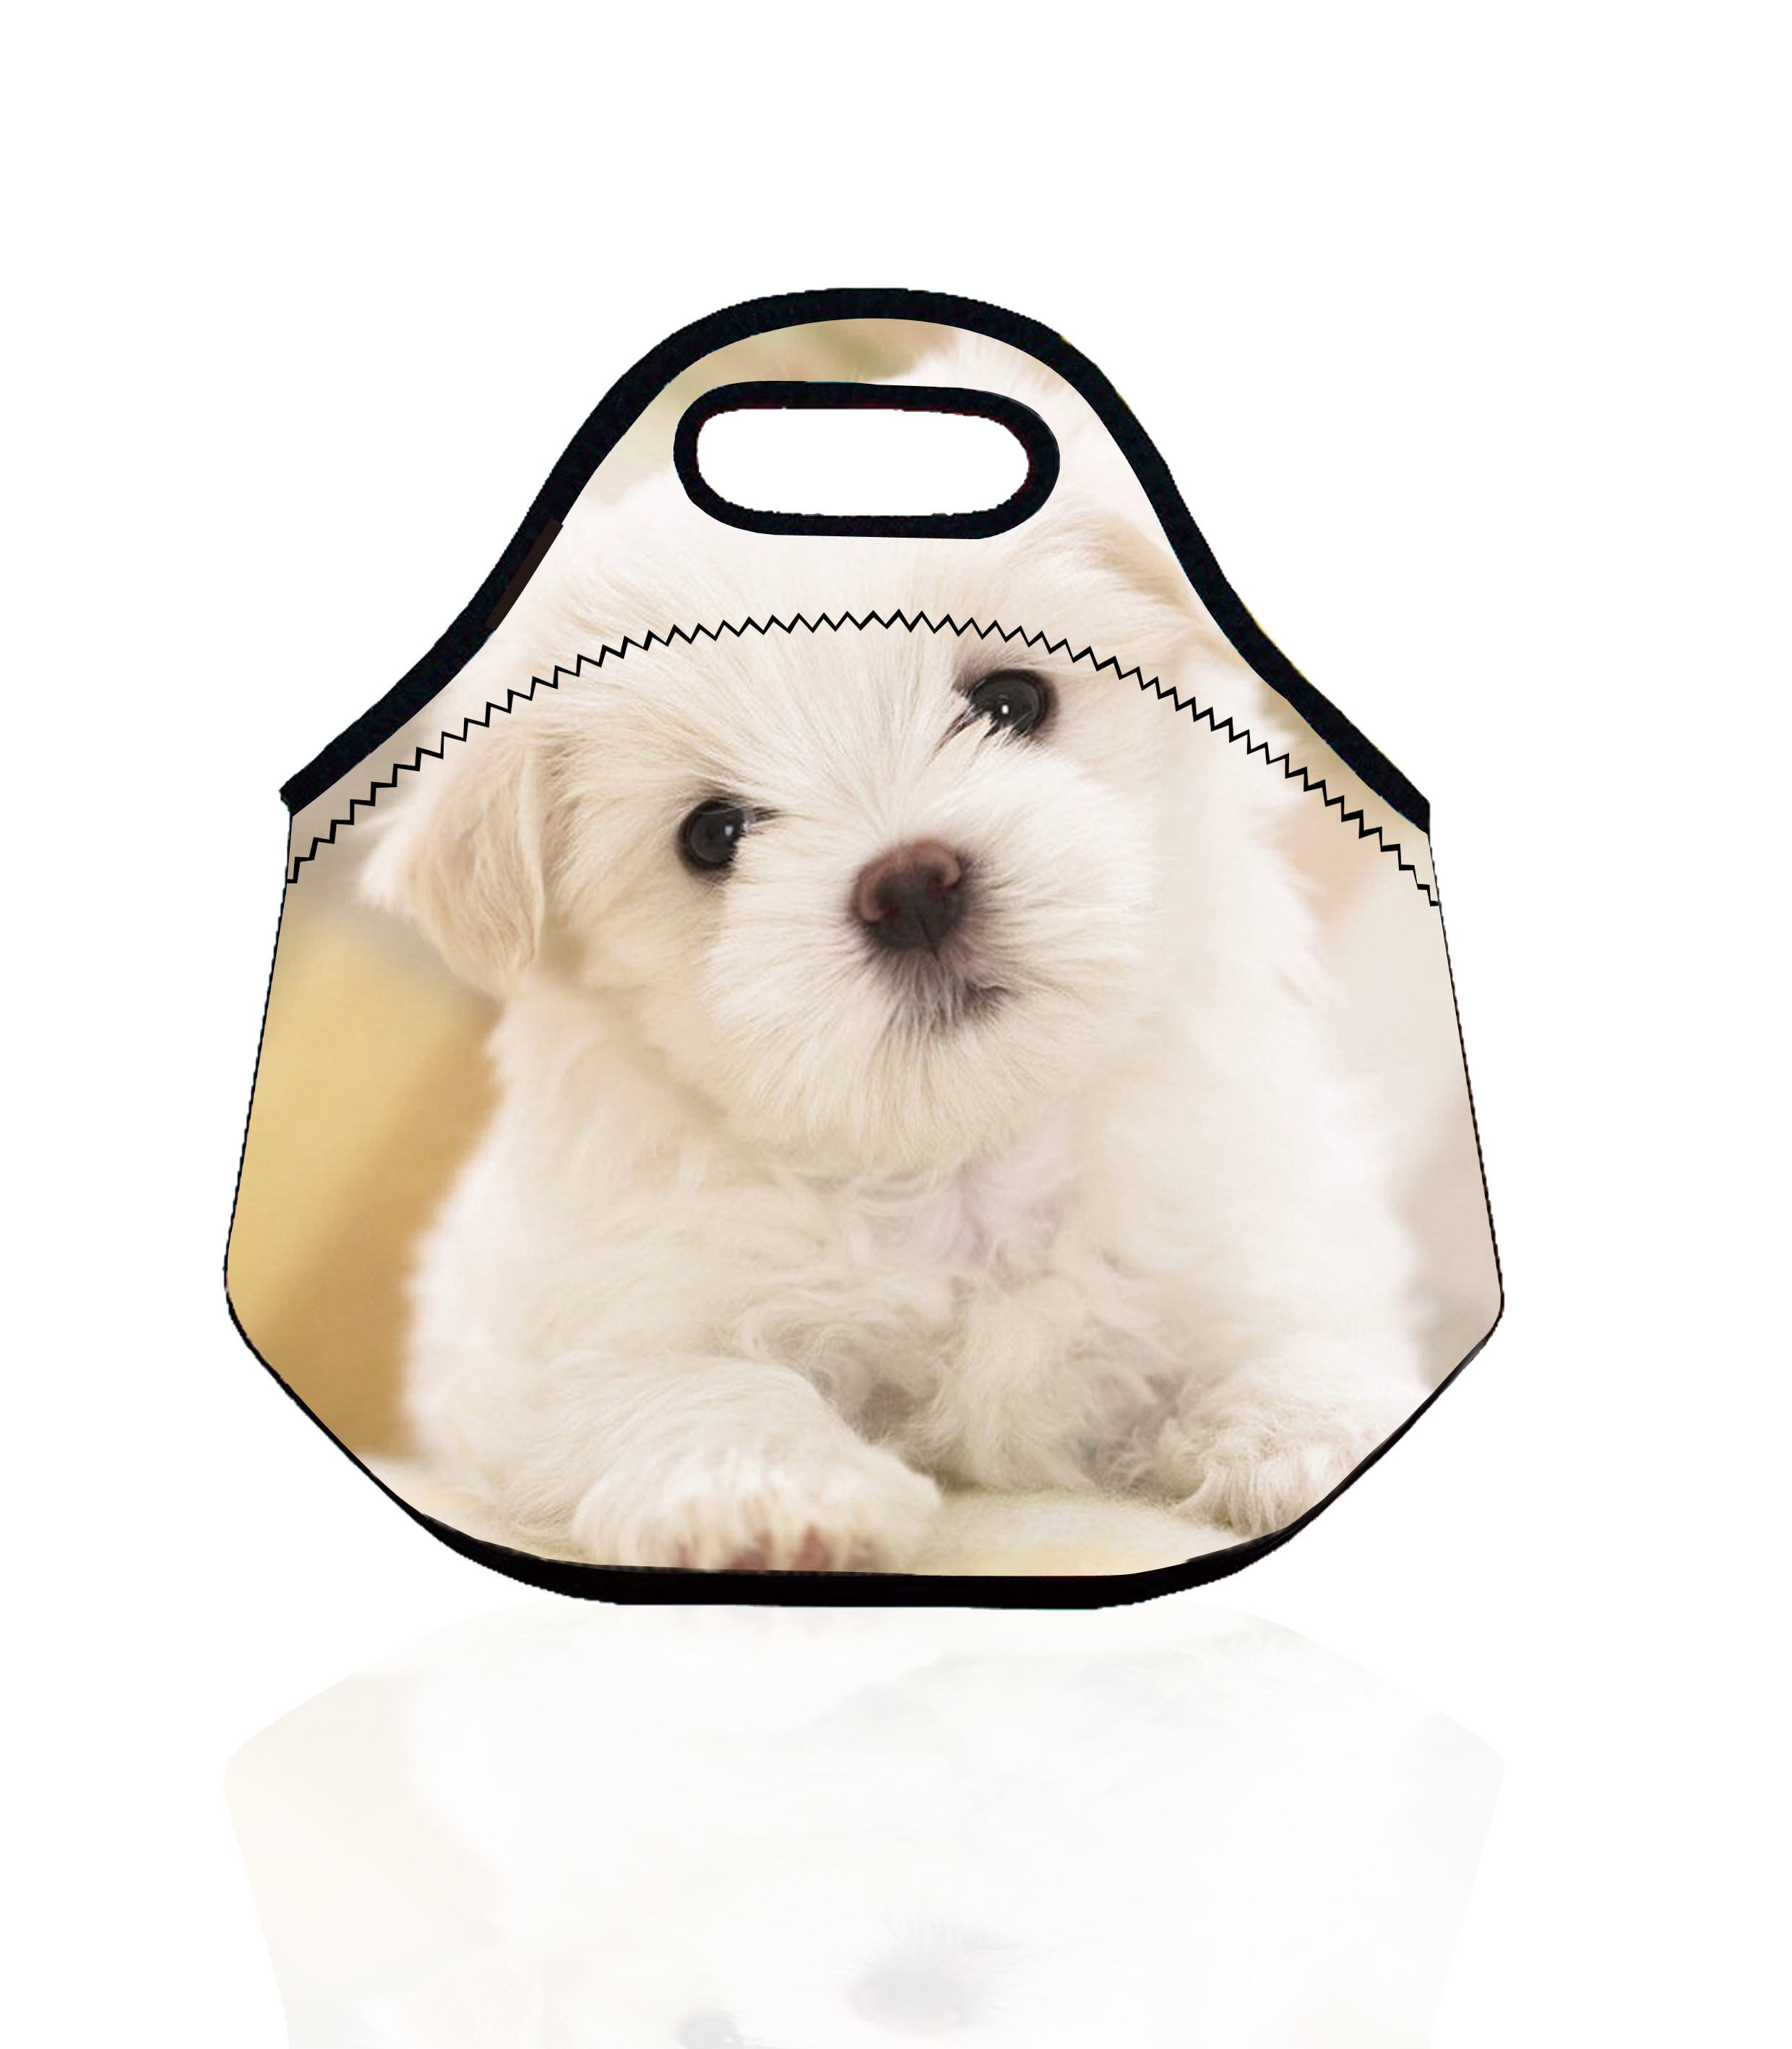 Cute Dog Neoprene Thermal Insulated Lunch Bag for Kids and Women Vacuum Bags Tote Lunch Box Storage Bag Lunch Cooler Bag